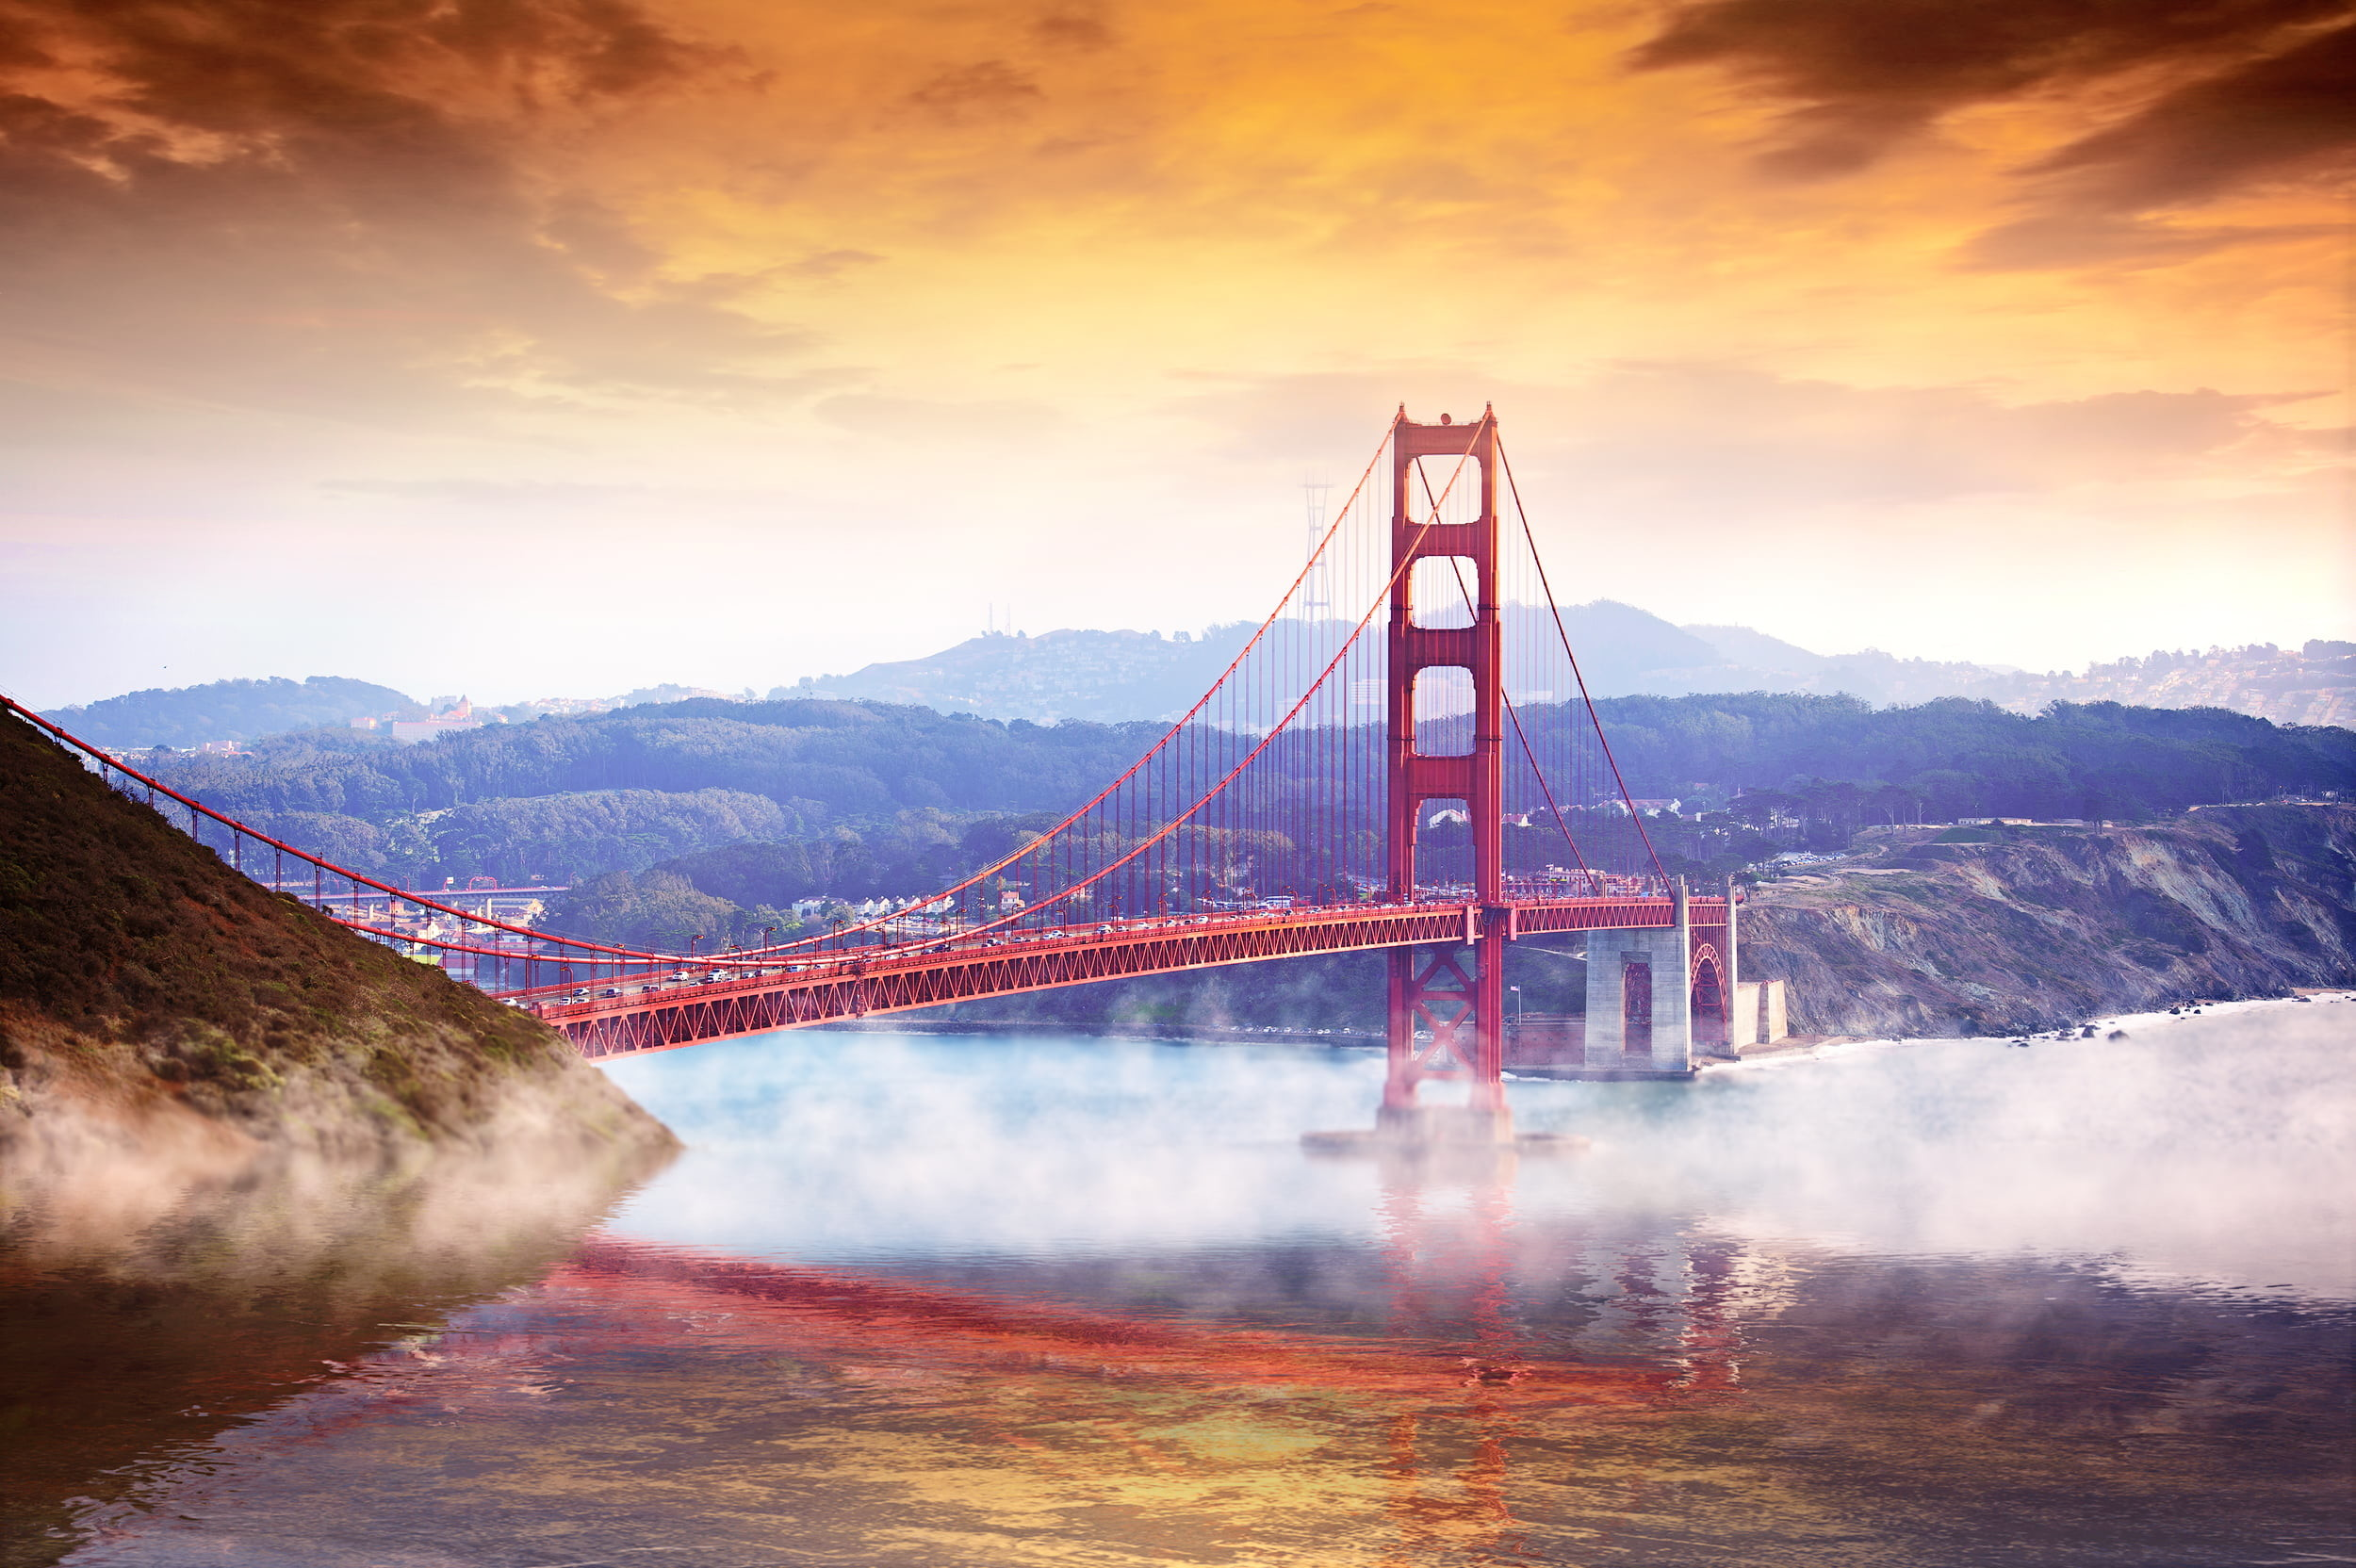 Res: 2500x1664, Golden gate bridge, reverie HD wallpaper